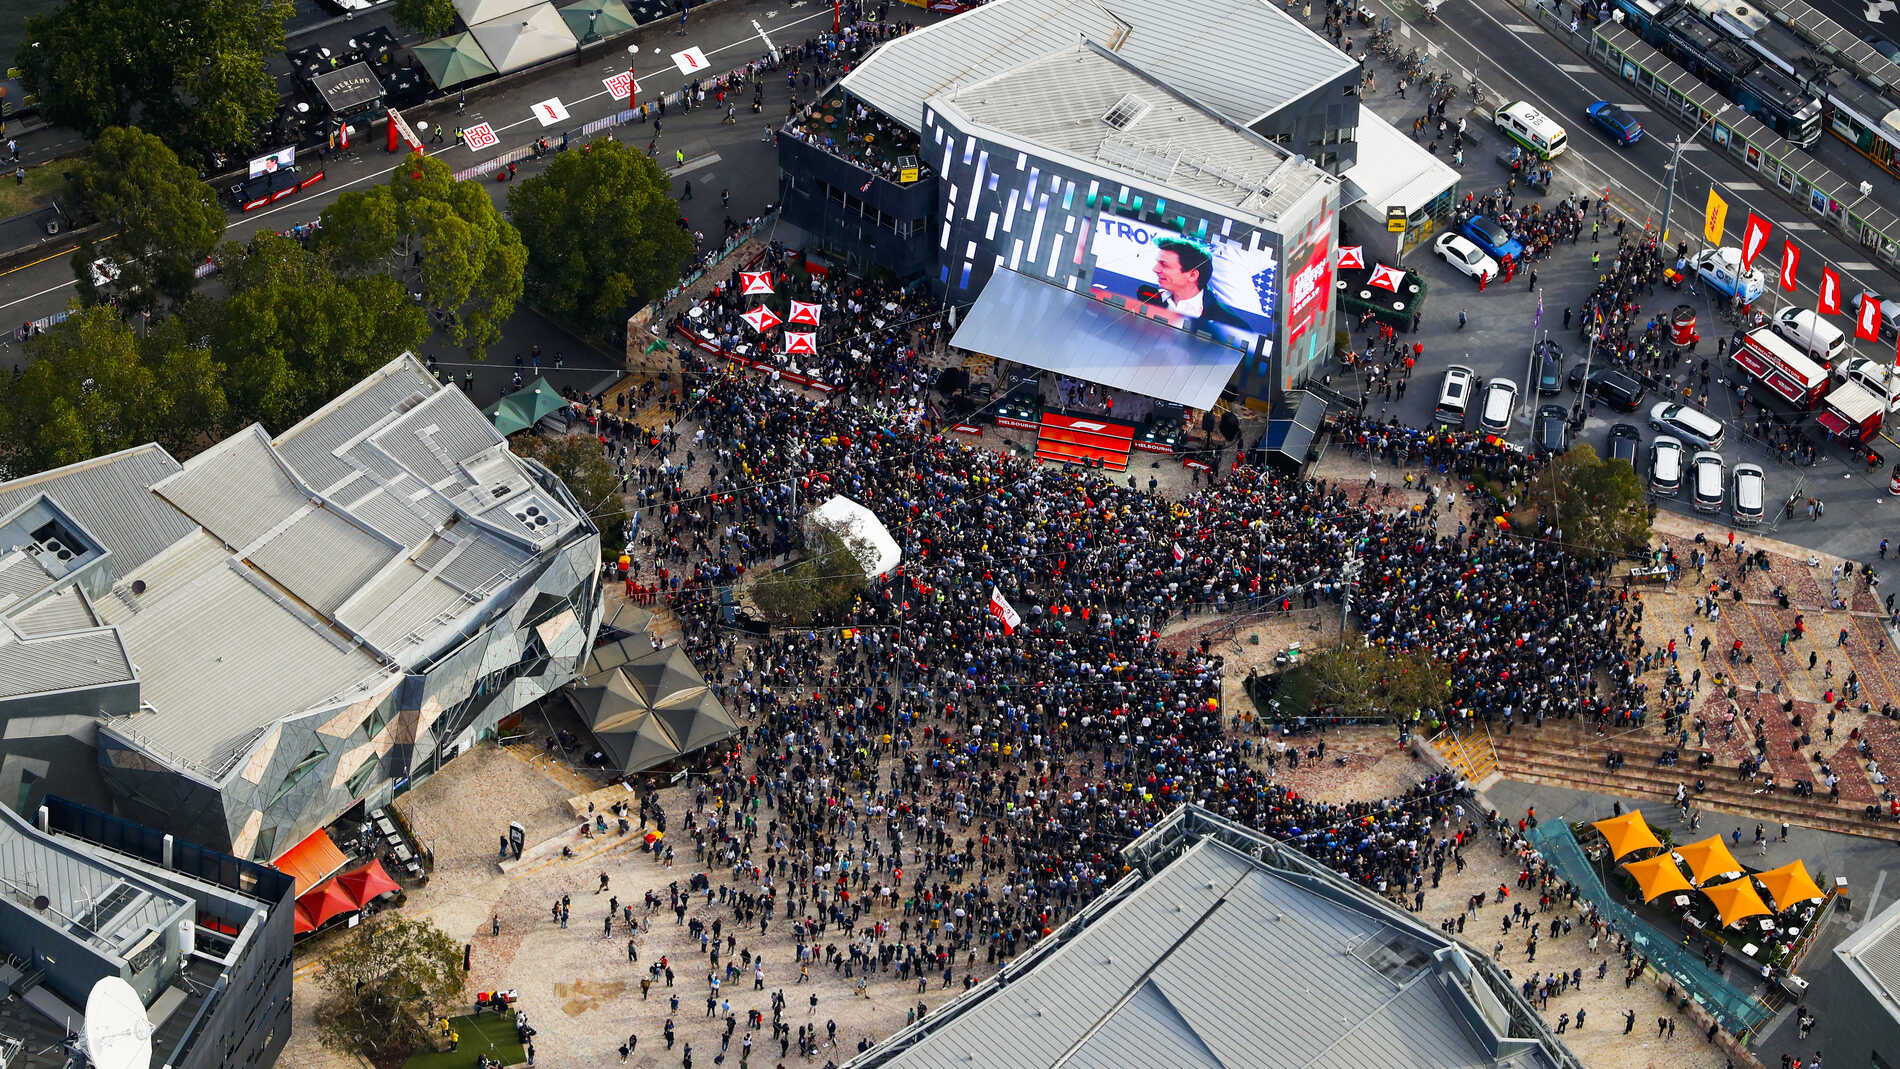 Watch the 2019 F1 Season Launch event from Melbourne ahead